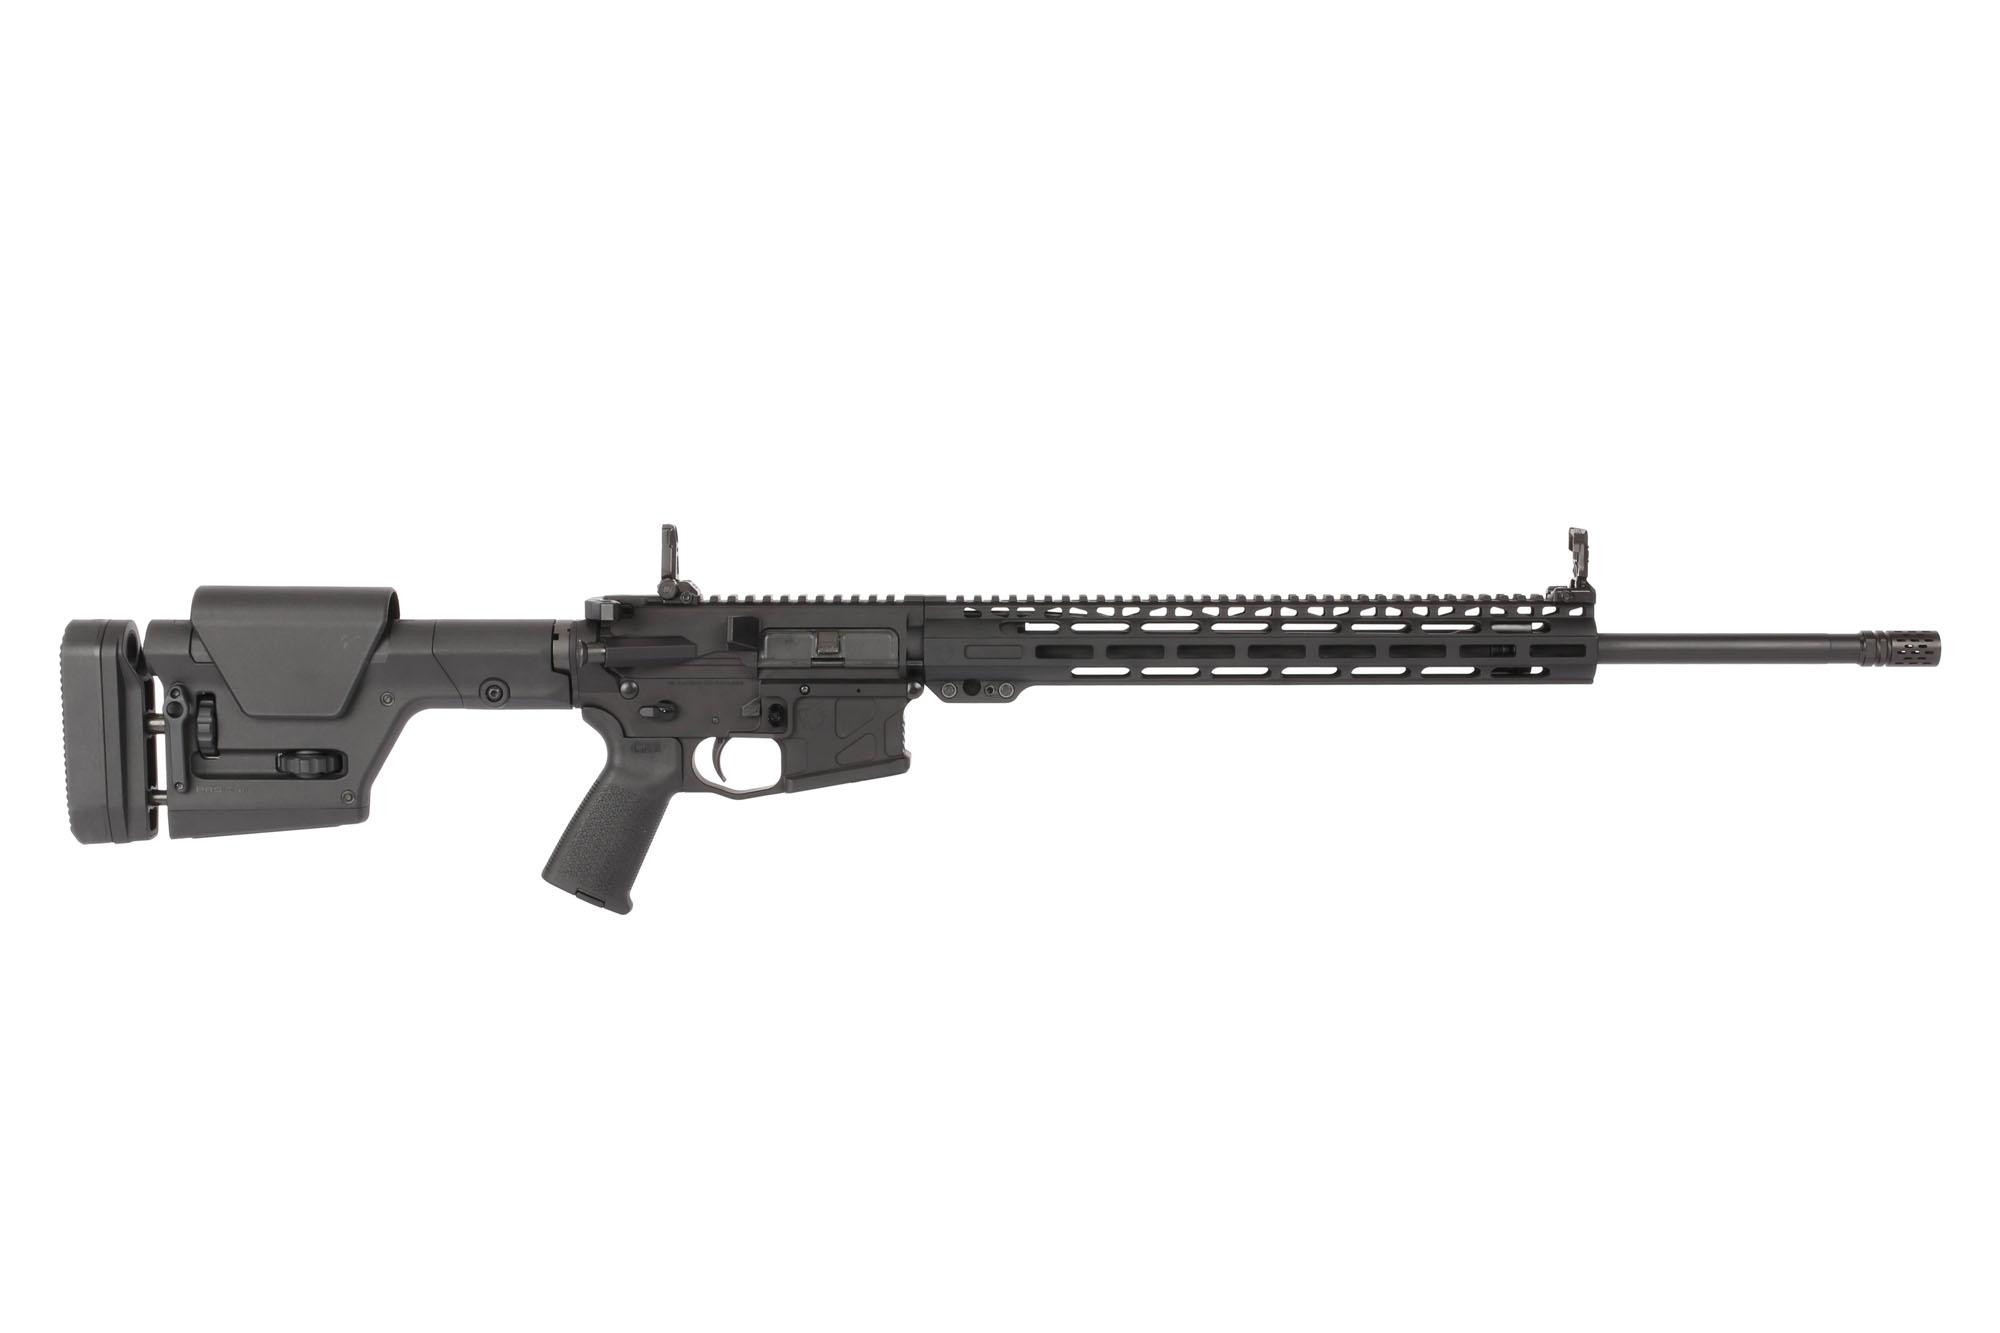 American Defense 22in .224 Valkyrie Universal Improved Carbine Mod 2 AR 15 Rifle - 15in M-LOK Handguard